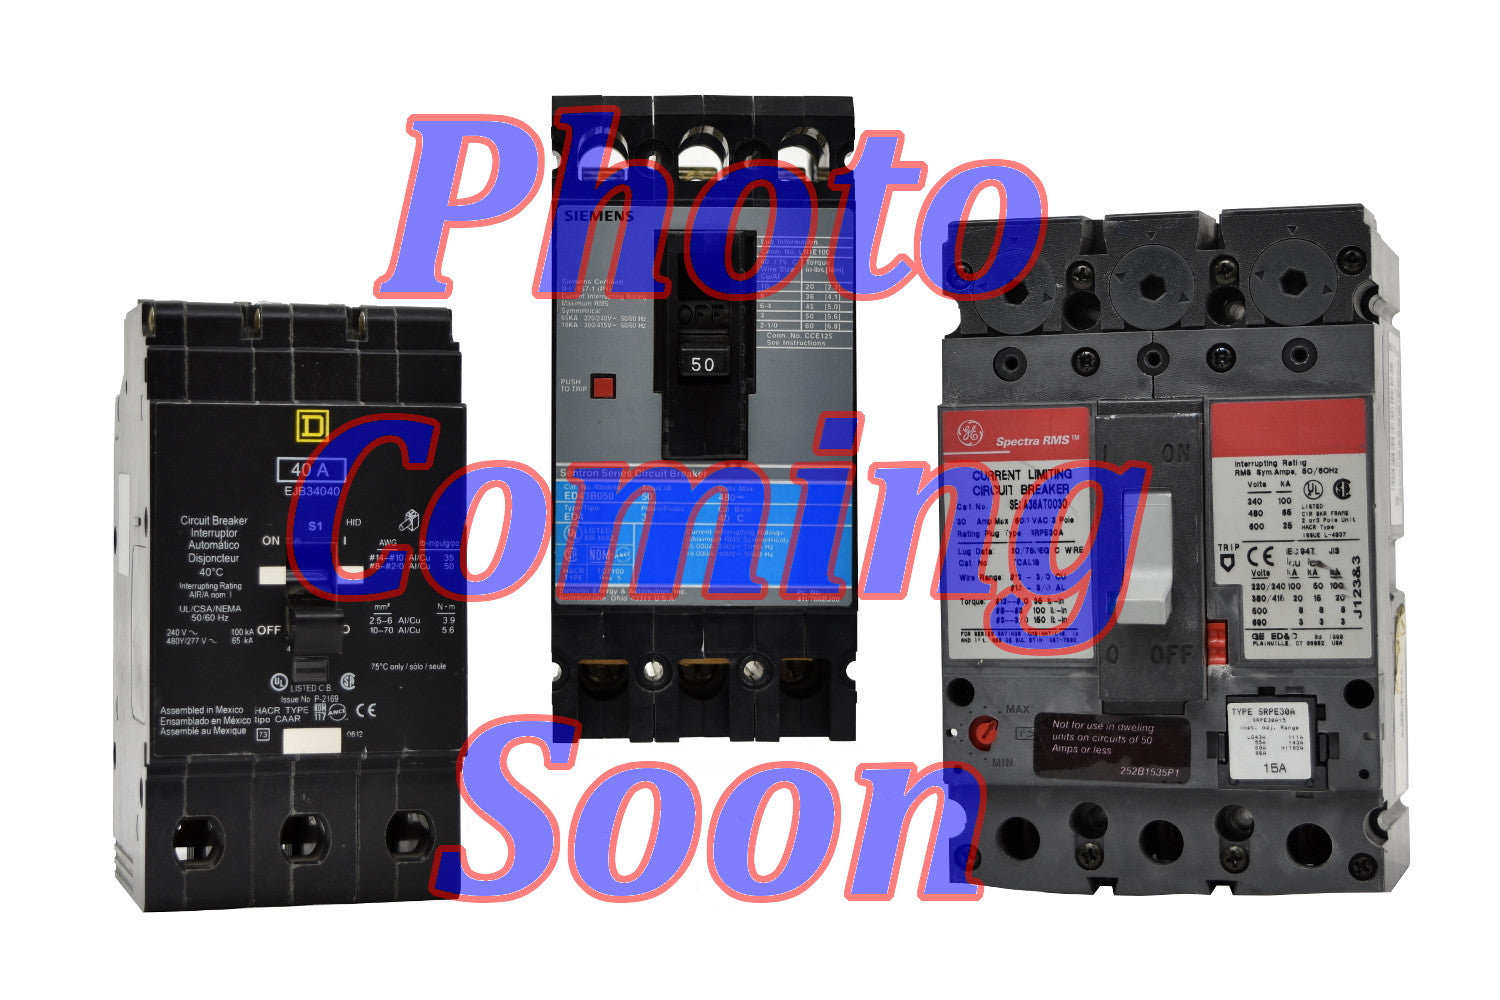 Siemens CLF63S250 Circuit Breakers